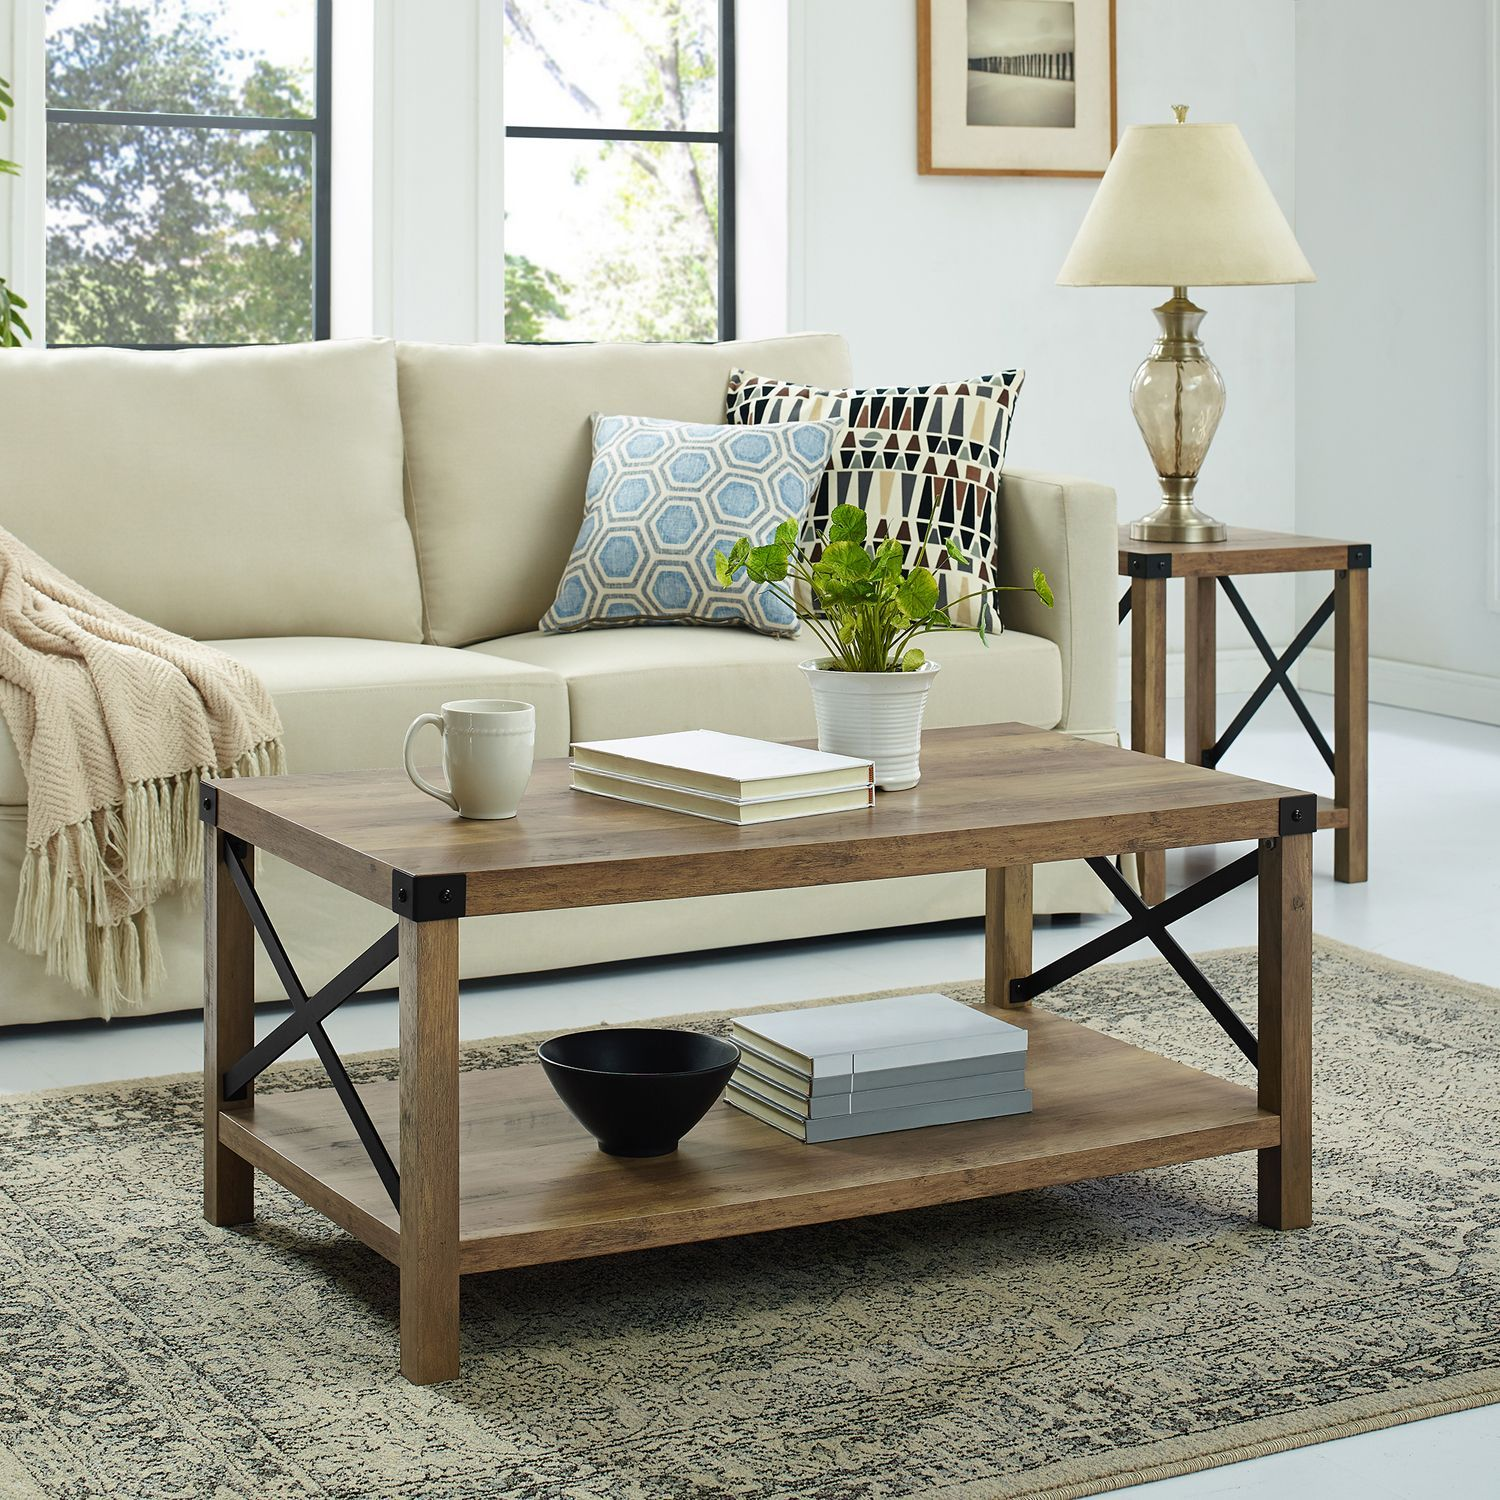 Null Rustic Oak Coffee Table Modern Farmhouse Coffee Table